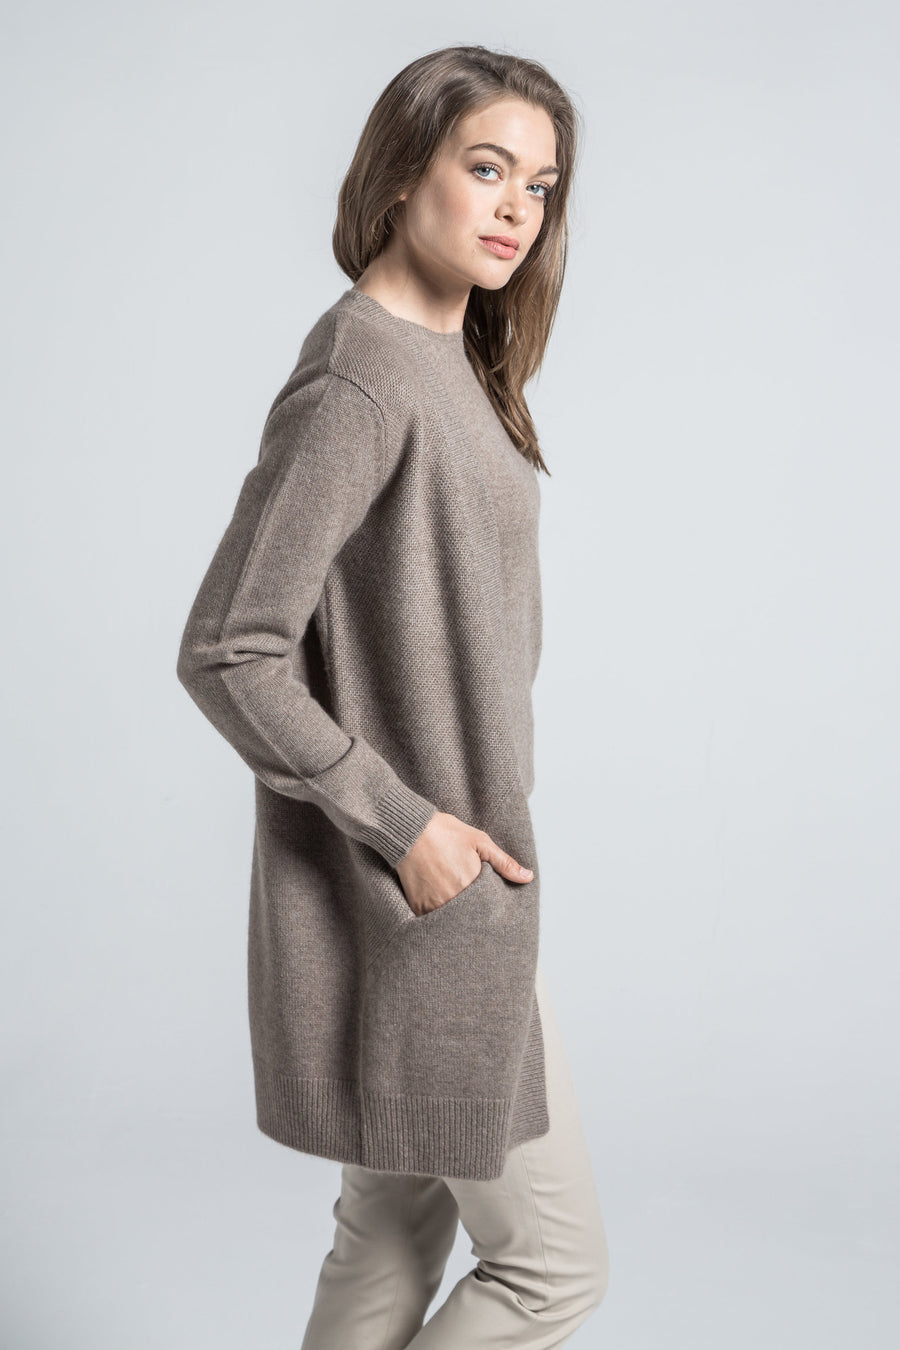 pine cashmere adeline women's 100% pure cashmere cardigan sweater in brown